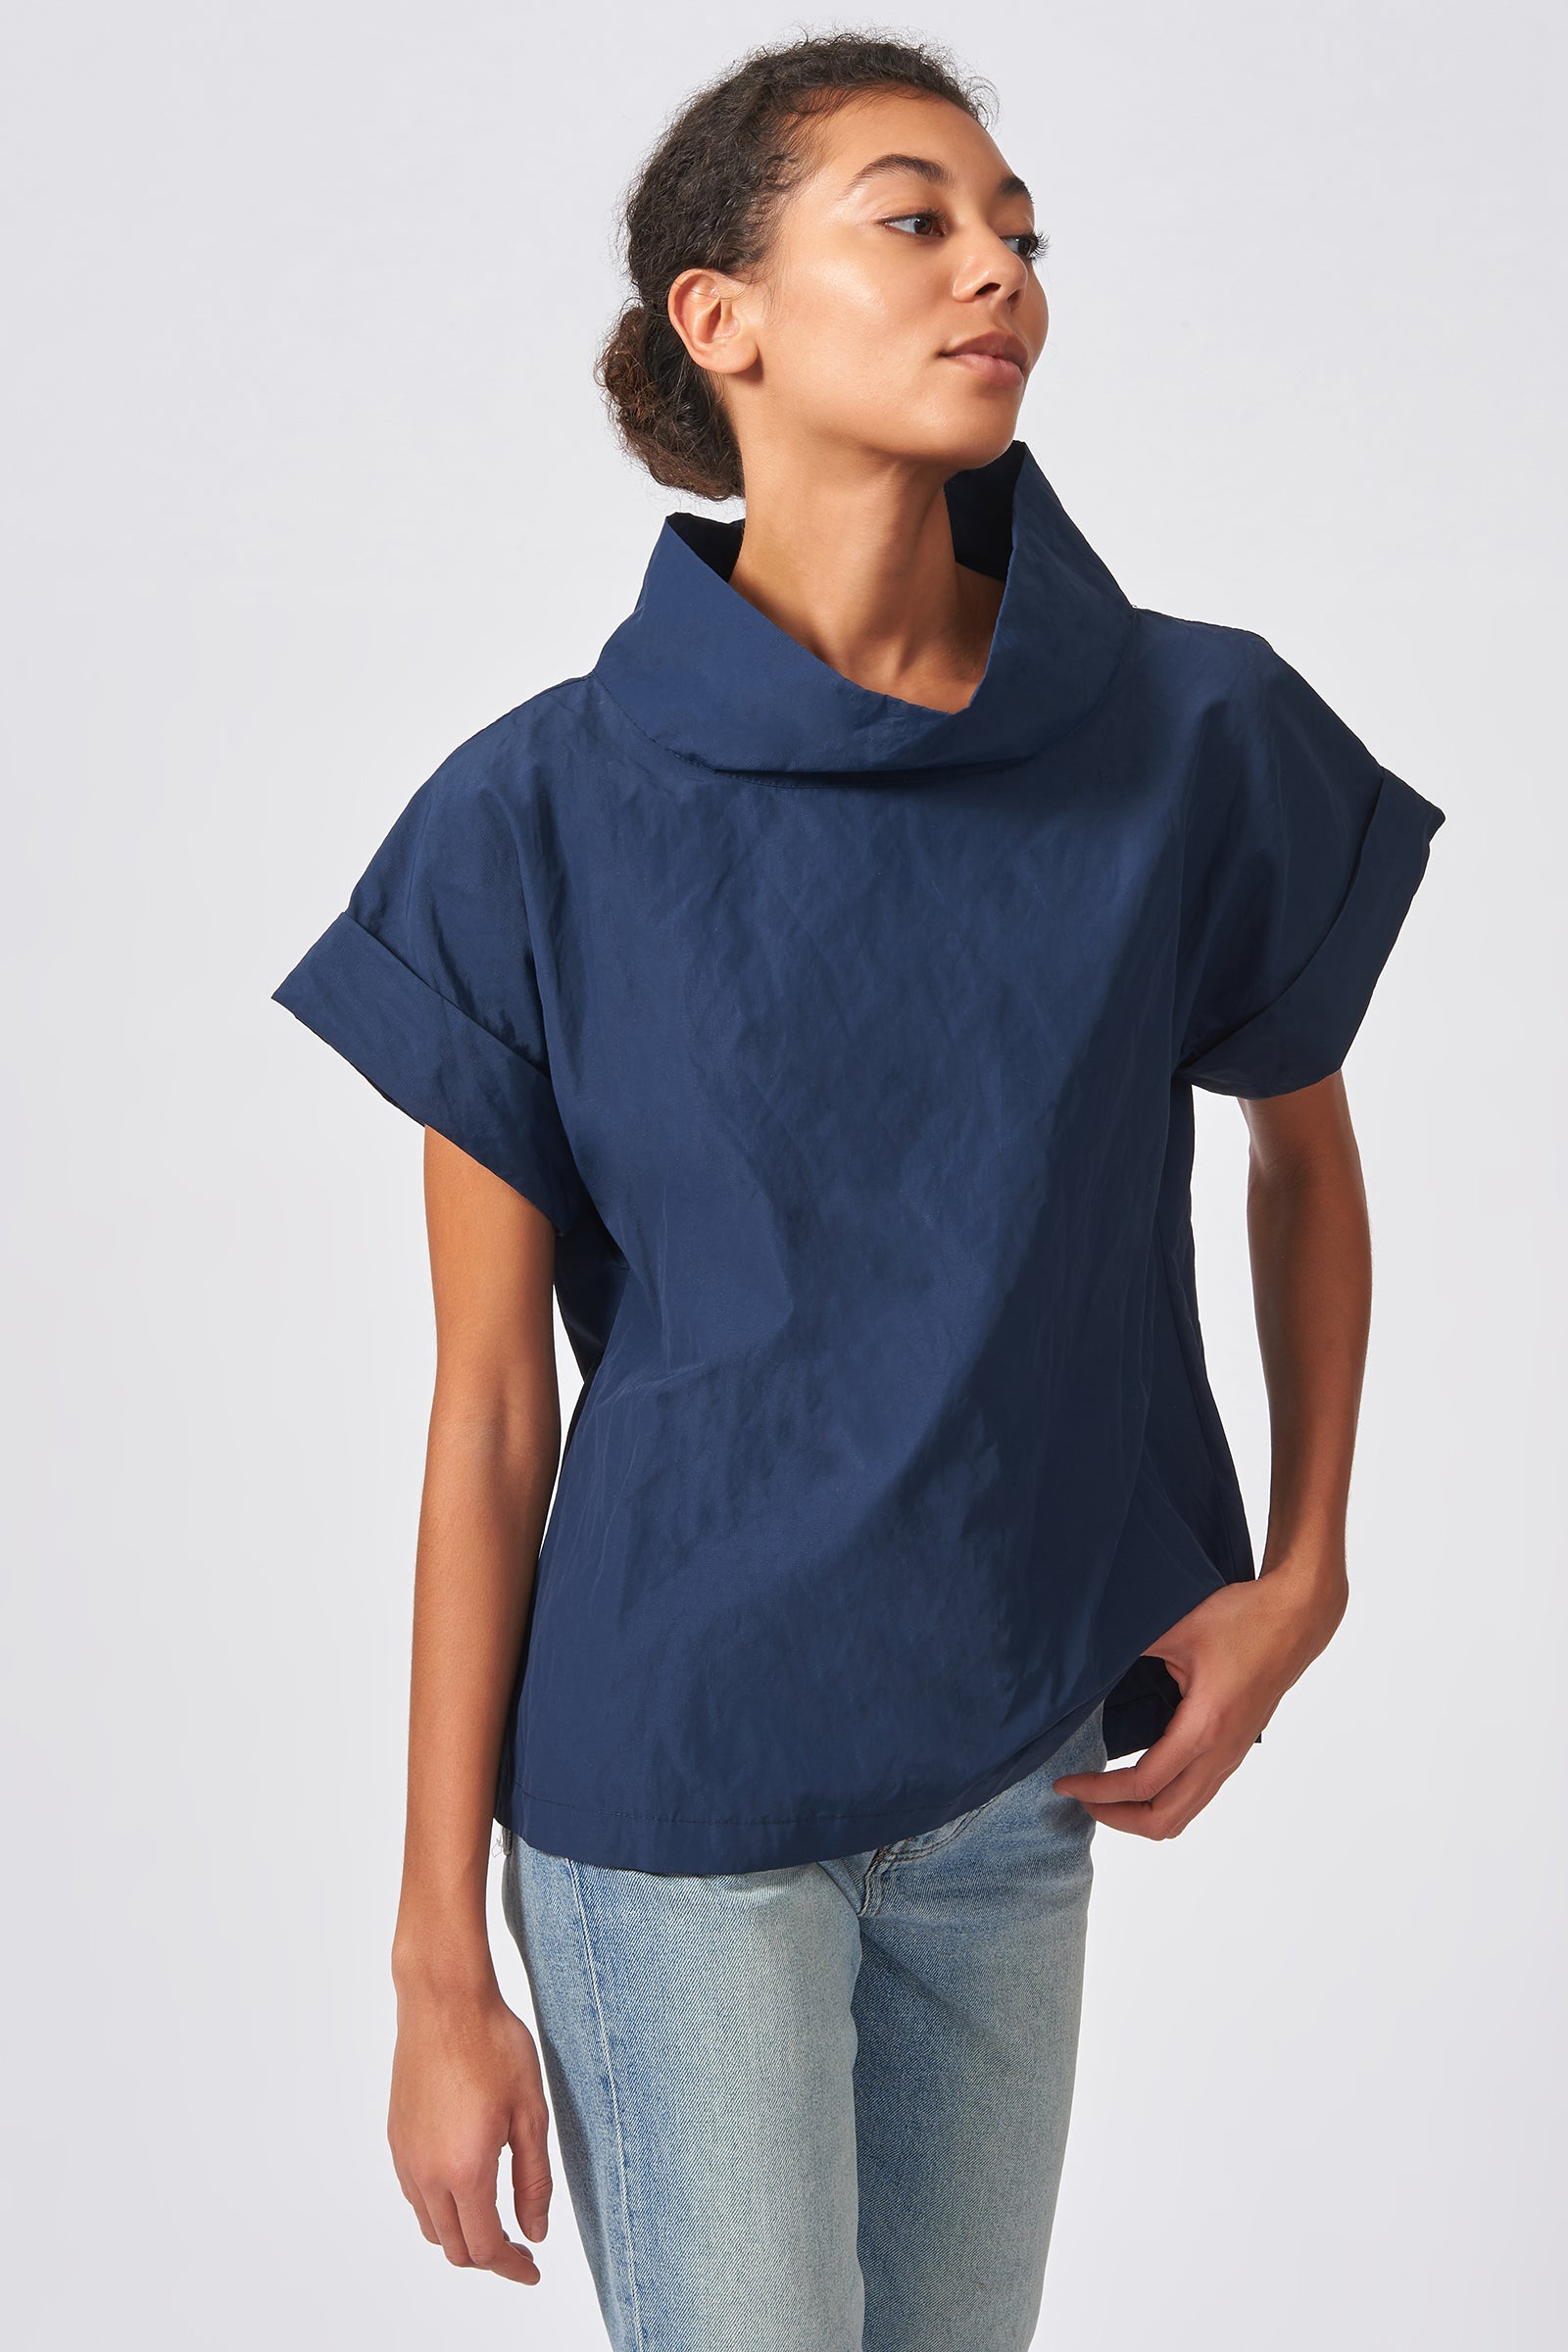 Kal Rieman Cuffed Kimono Tee in Navy Cotton Nylon on Model Front View